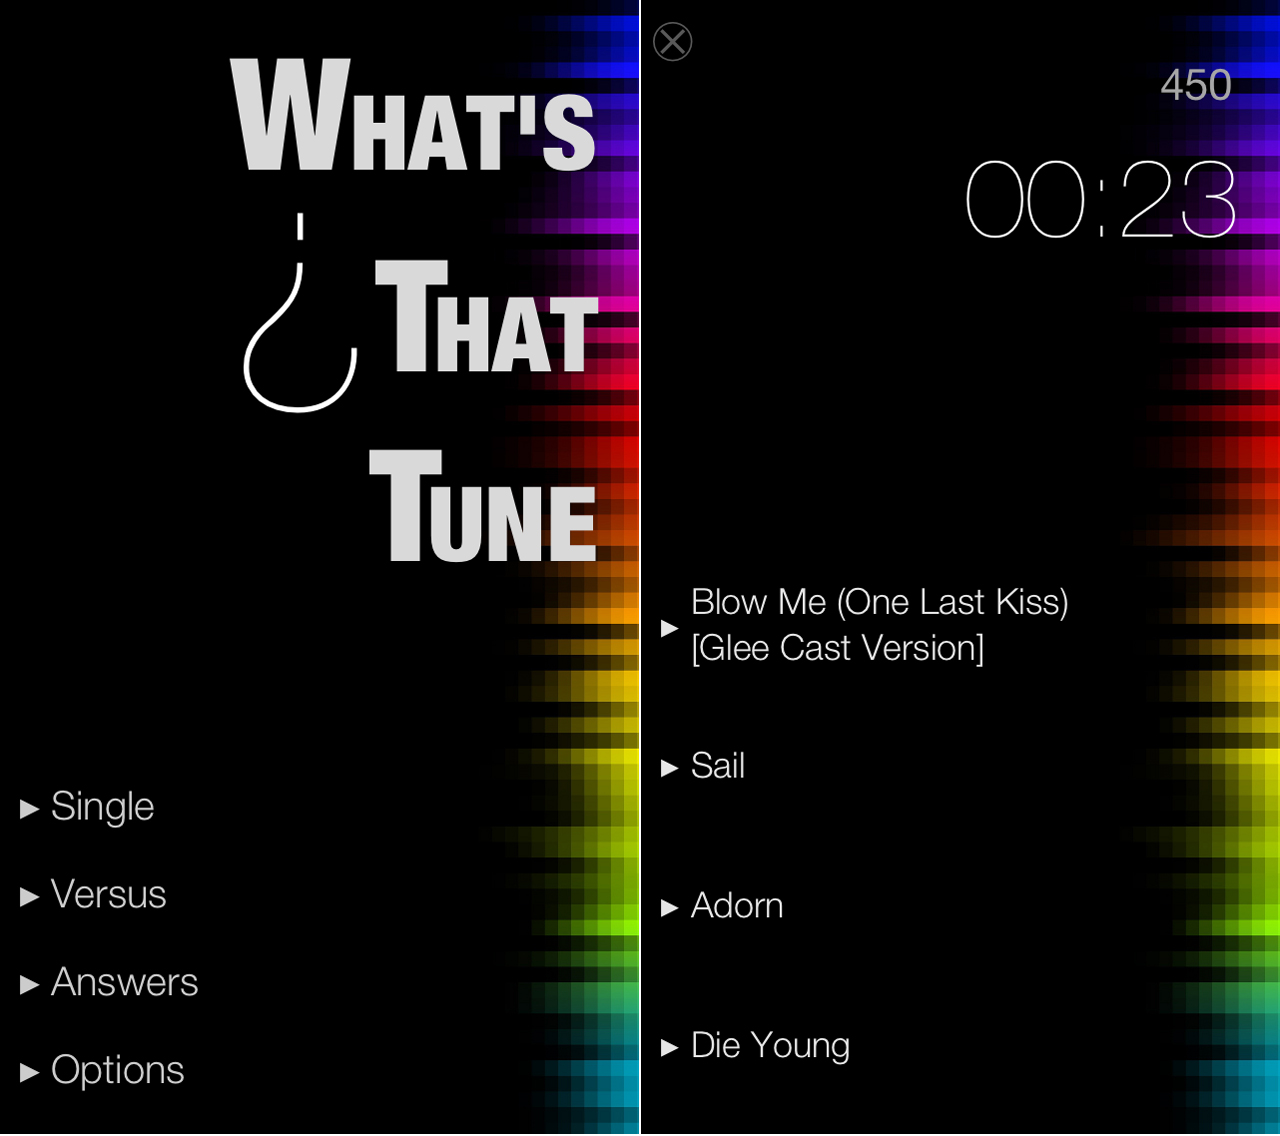 XVision Makes Several Pleasing Adjustments To 'What's That Tune?'